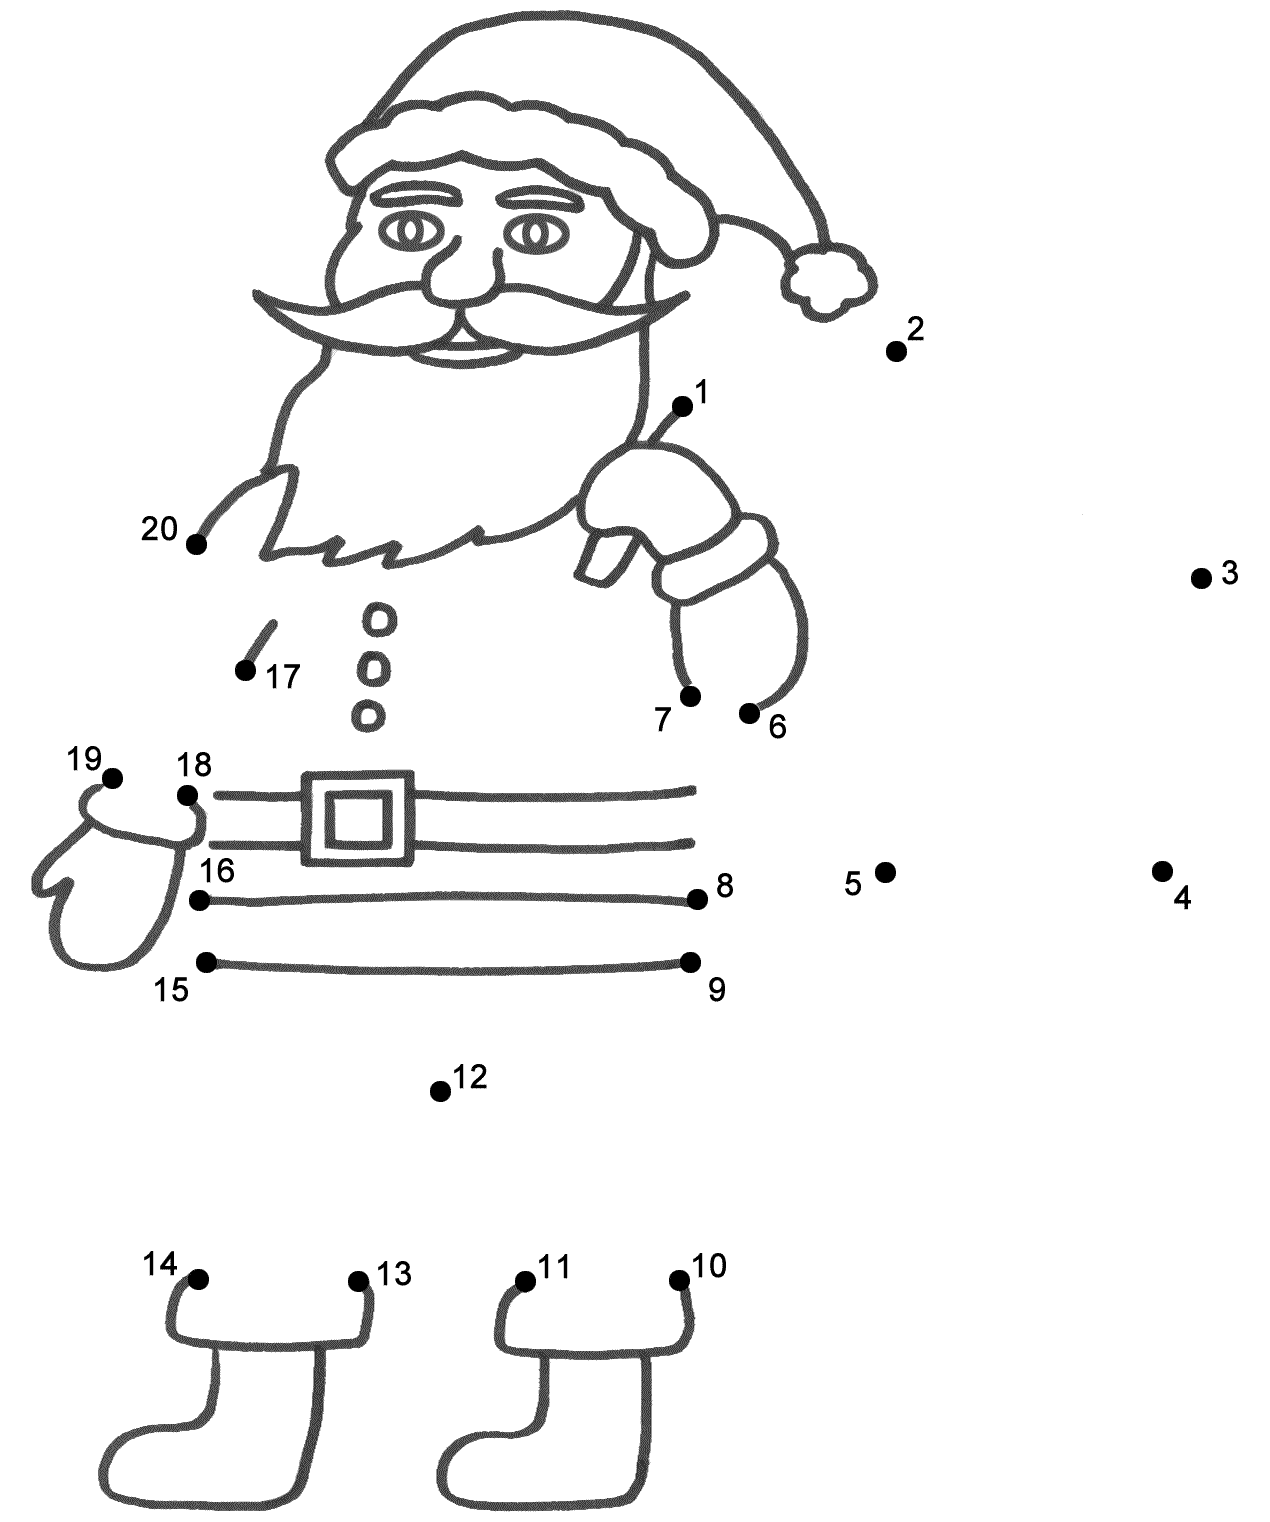 santa dot to dot santa claus happy dot to dot printable worksheet connect dot dot to santa